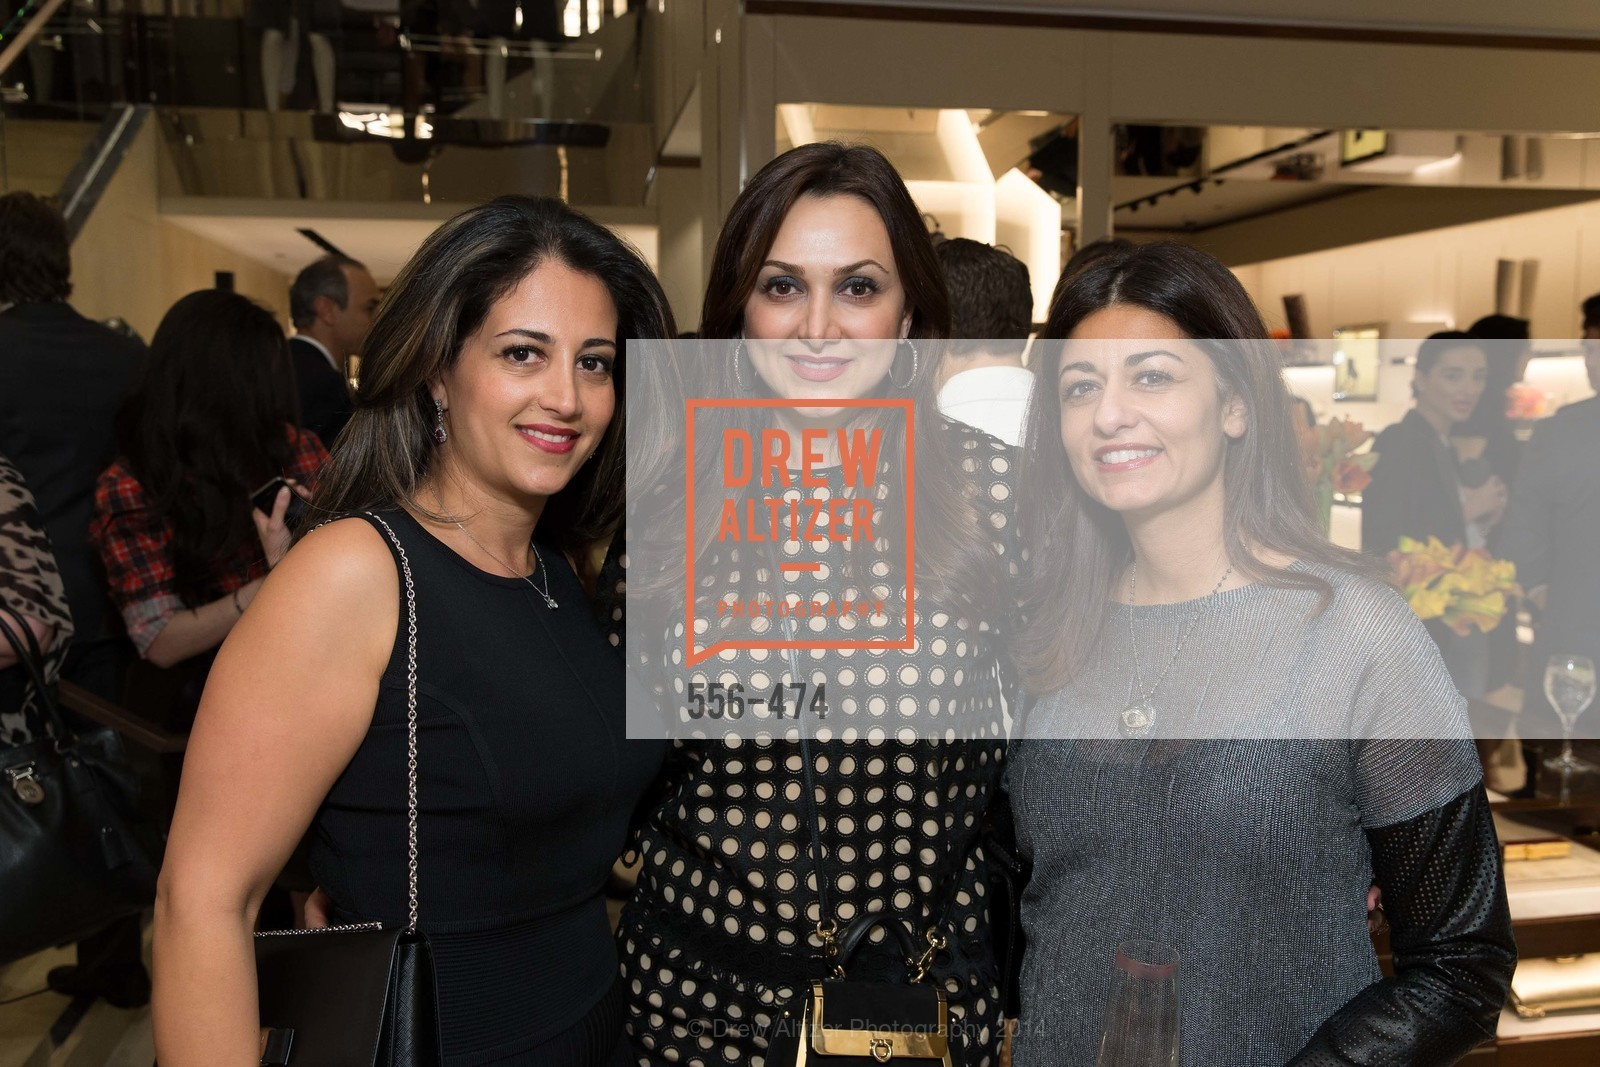 Sanaz Malek, Bita Daryabari, Laleh Kazemi, SALVATORE FERRAGAMO San Francisco Re-Opening, US. US, January 23rd, 2014,Drew Altizer, Drew Altizer Photography, full-service agency, private events, San Francisco photographer, photographer california